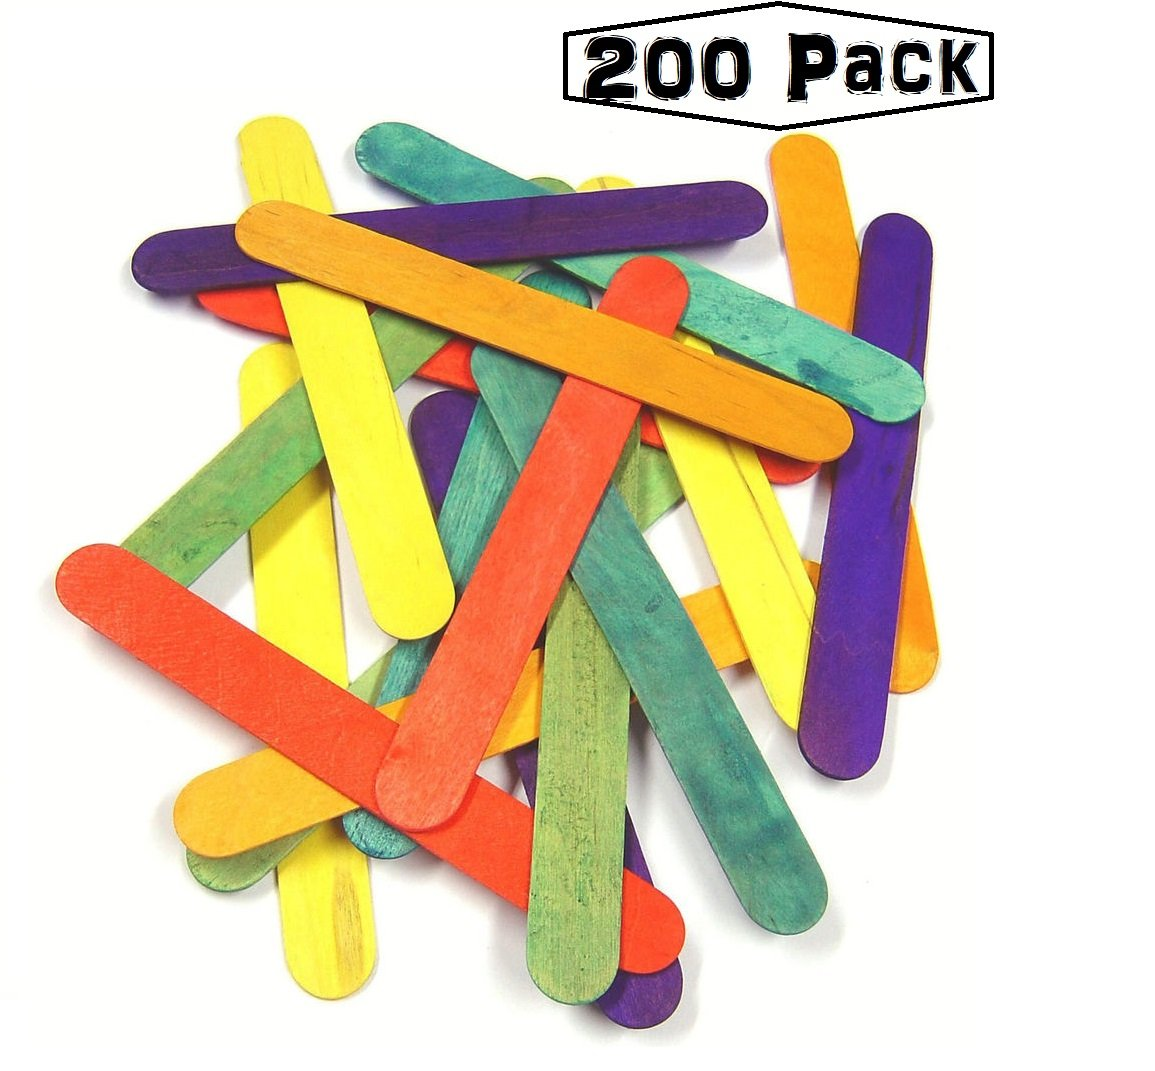 Jumbo Popsicle Sticks - Wooden Colored Craft Sticks/Stix - 200 Pack Large Assortment Pop Sticks – Great for Kids, DIY Projects, School Supplies, and Crafting - by Kidsco